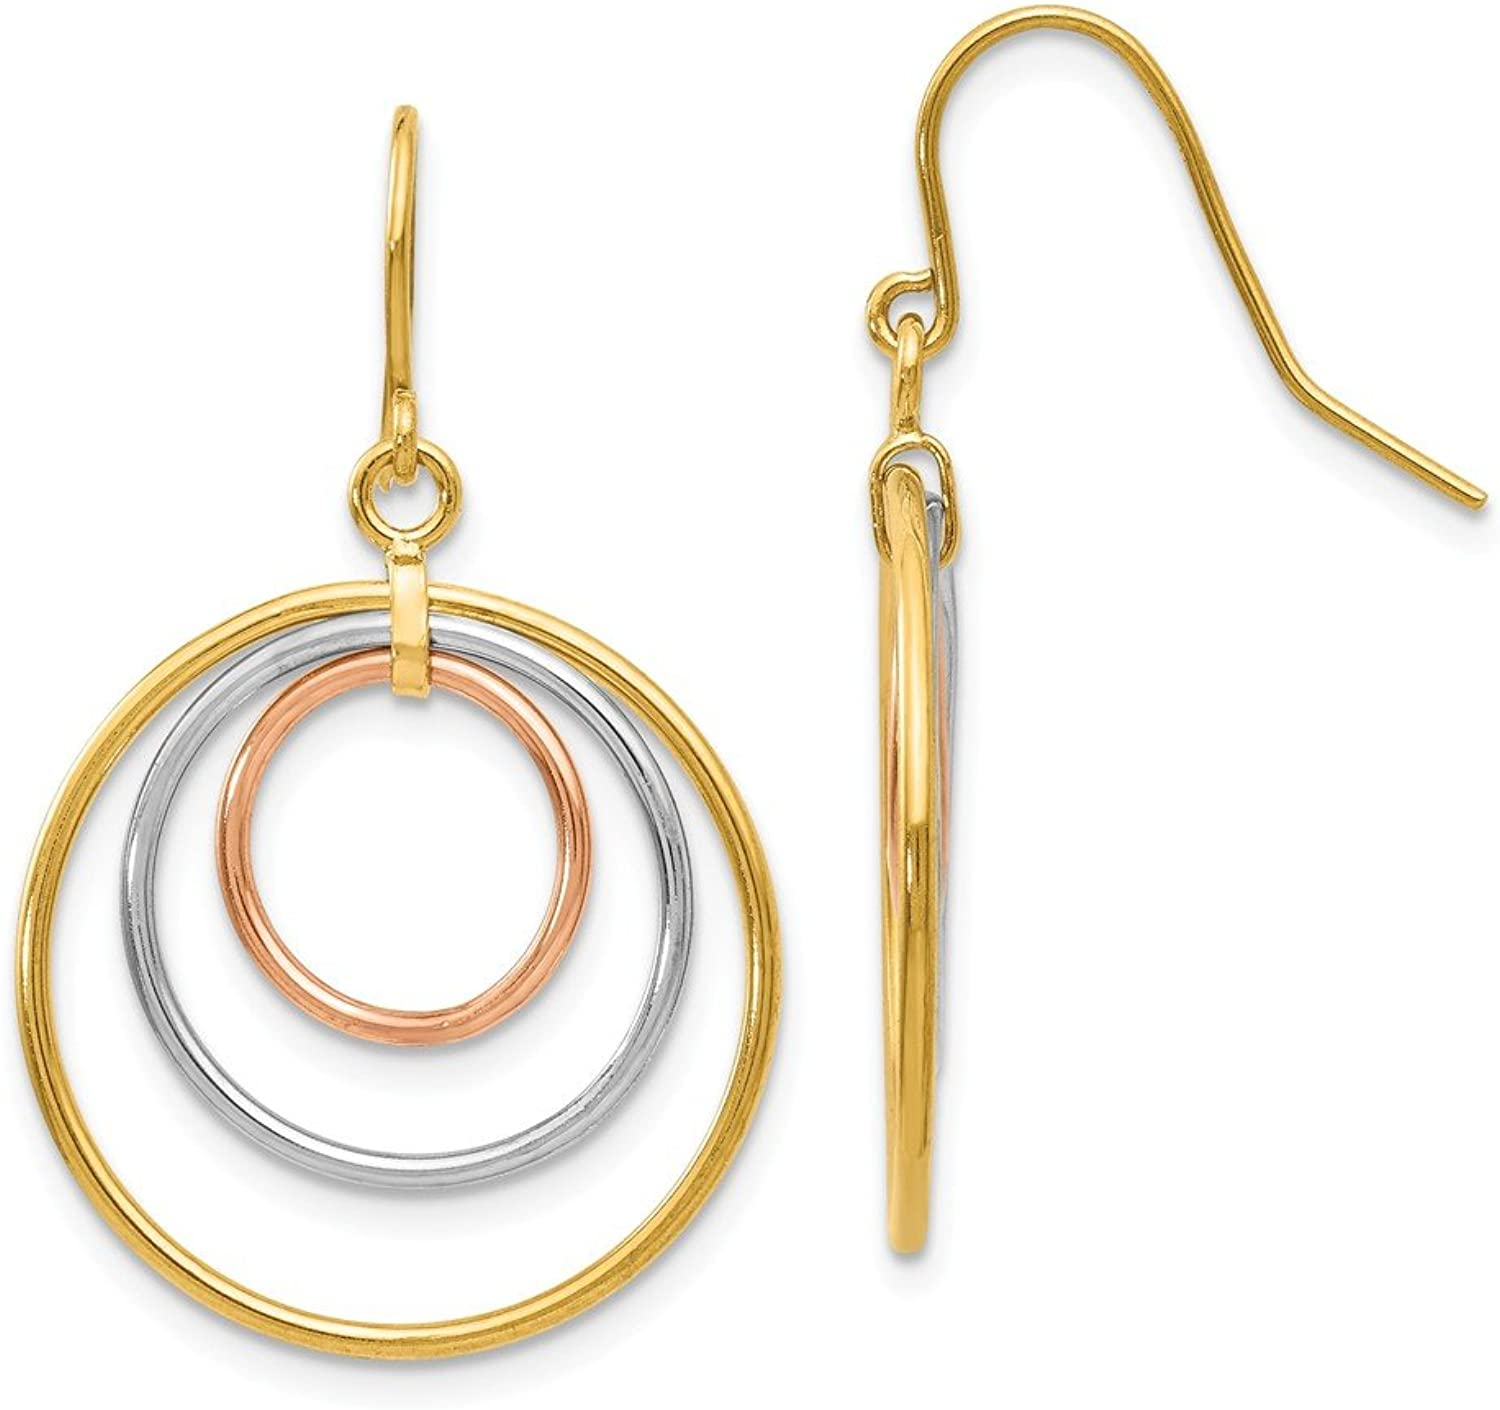 Beautiful Tri color gold 14K 14k Tricolor Circle Dangle Earrings